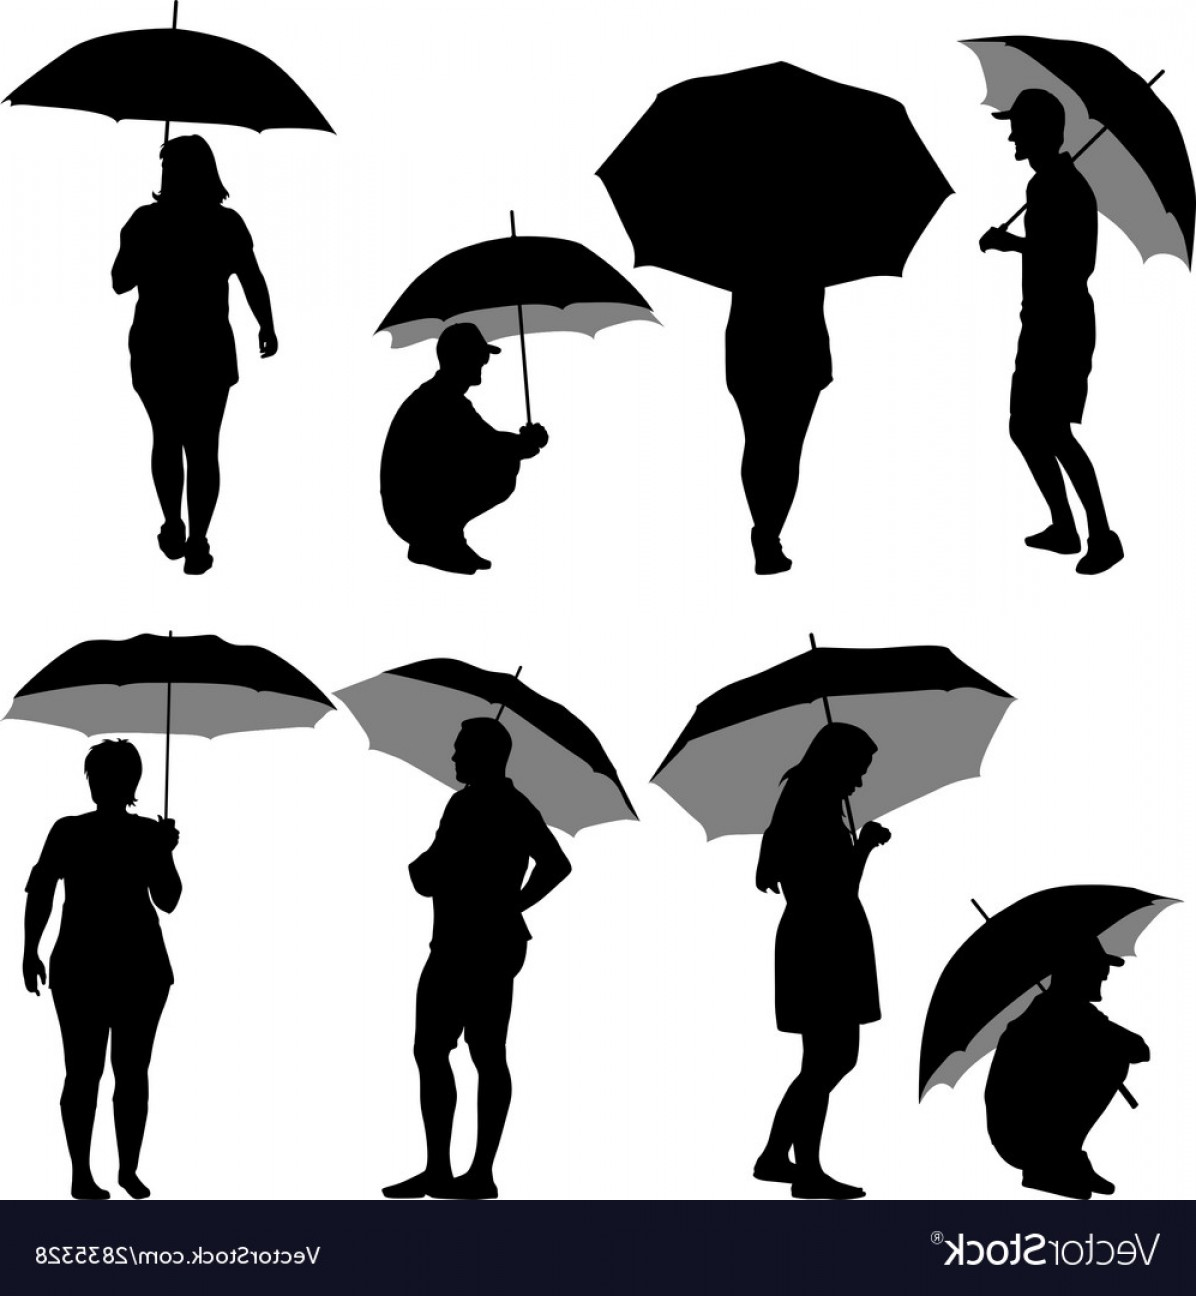 Umbrella Vector Black: Black Silhouettes Man And Woman Under Umbrella Vector